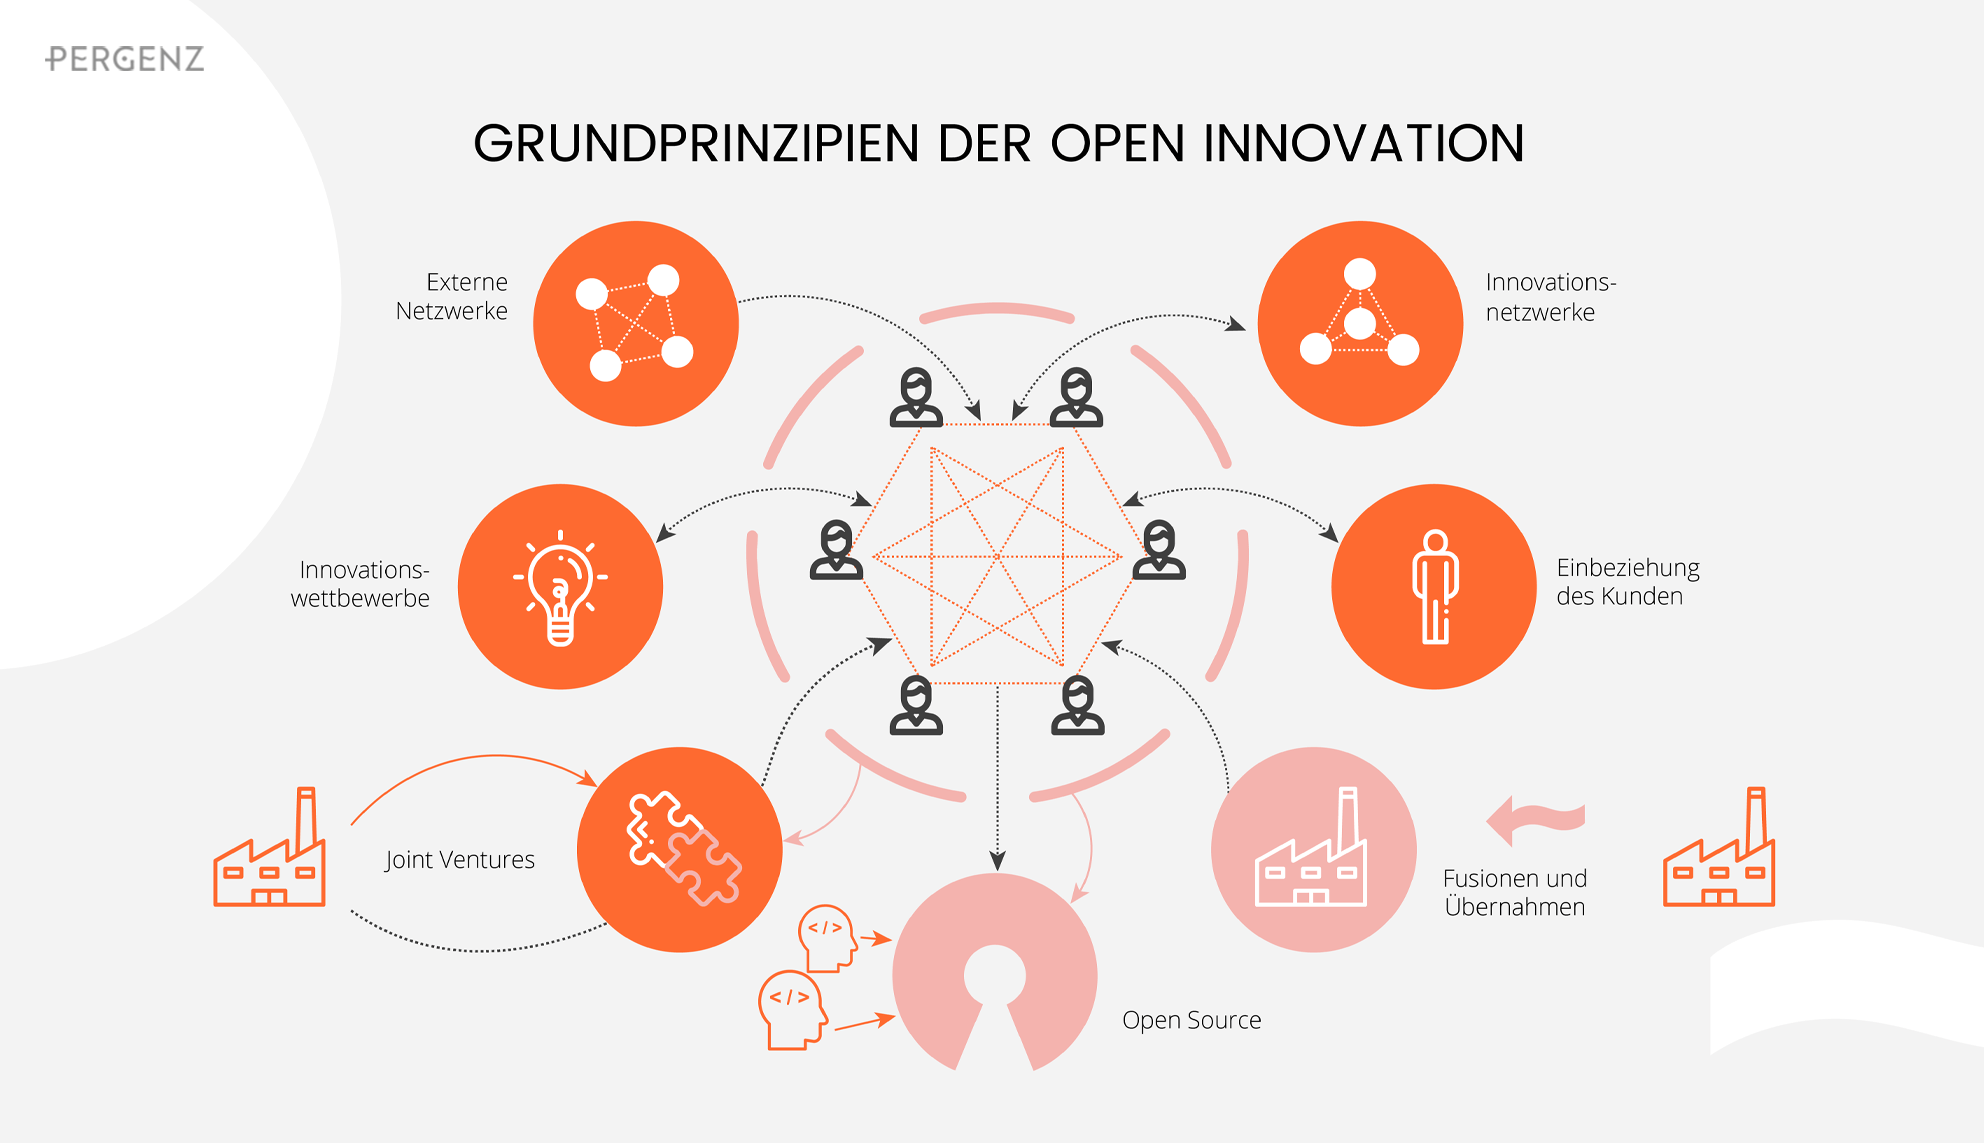 Grundprinzip der Open Innovation